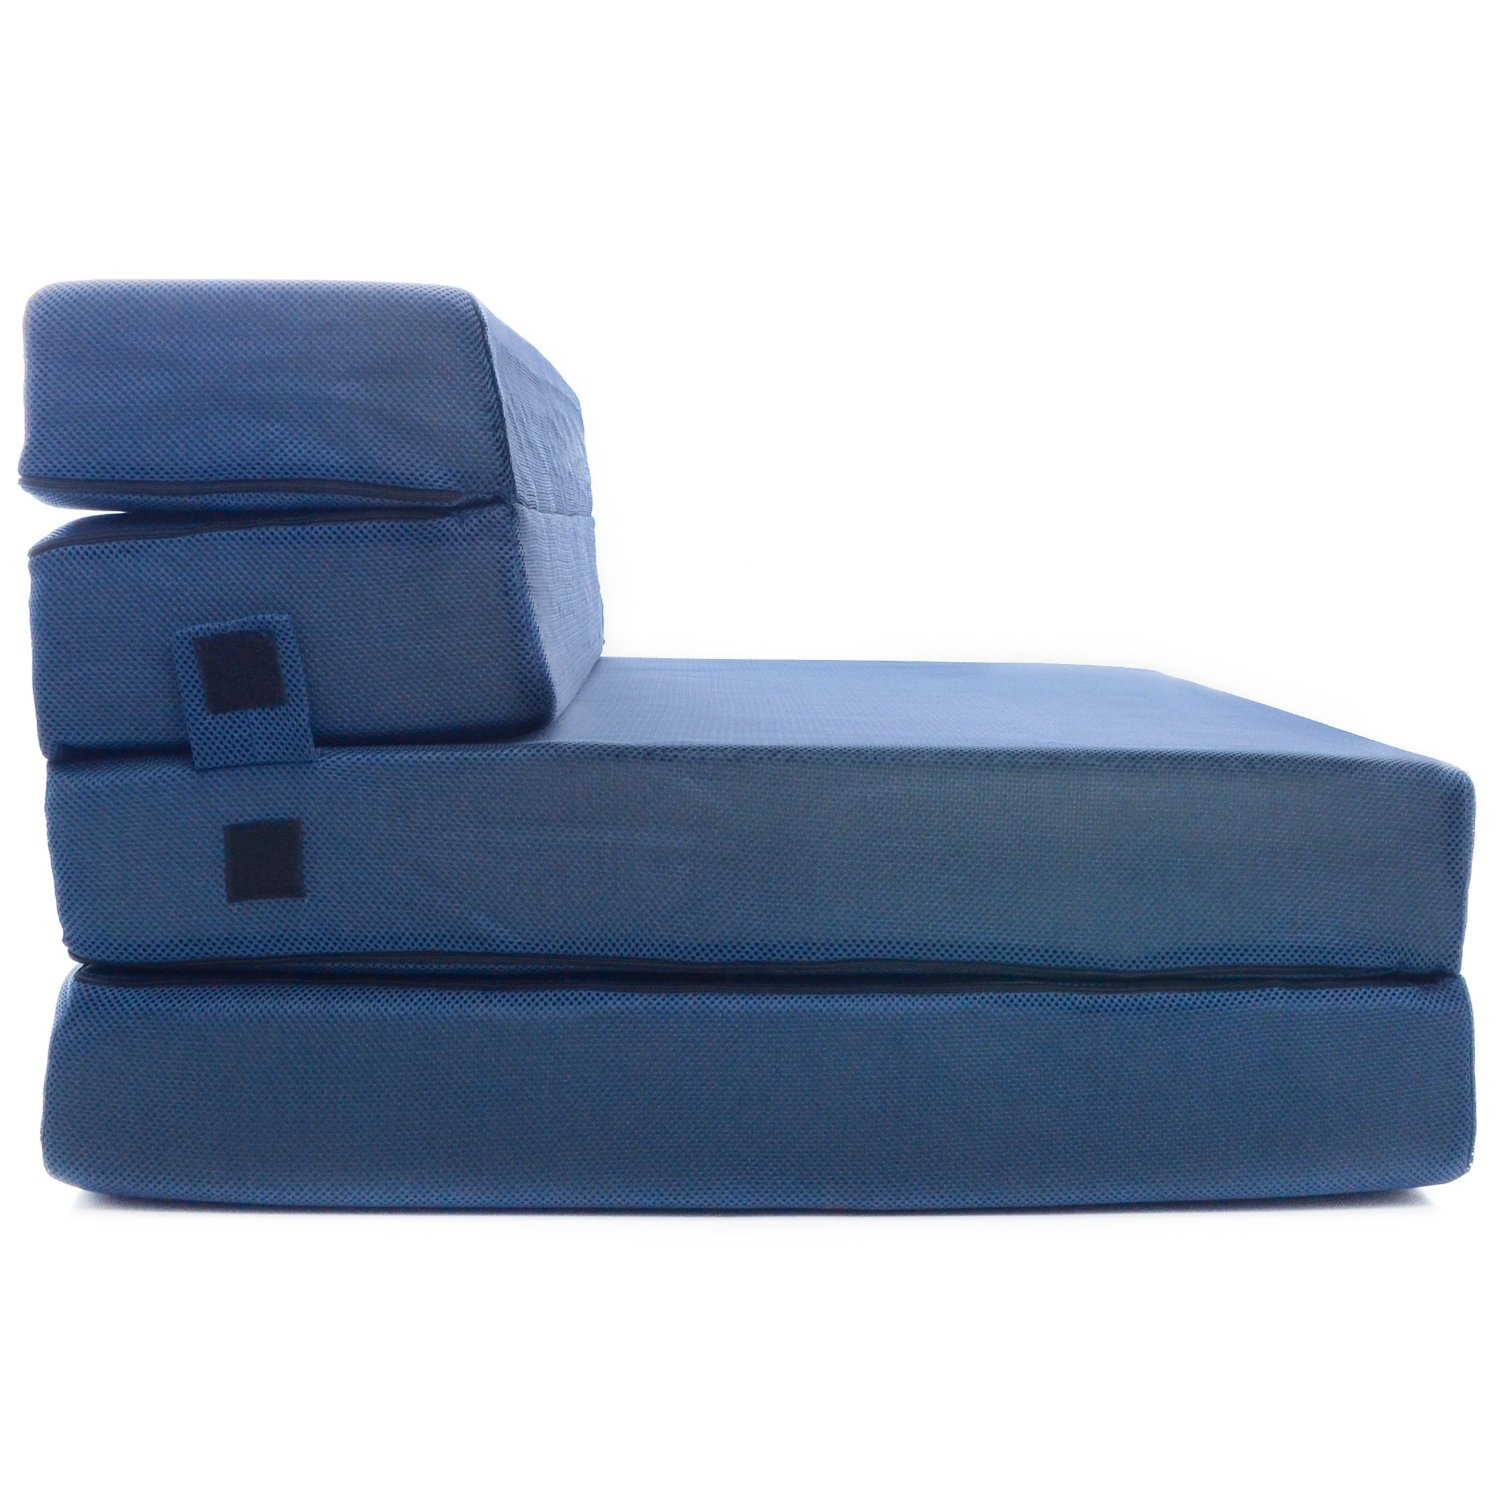 Tri fold foam folding mattress and sofa bed queen for Folding bed